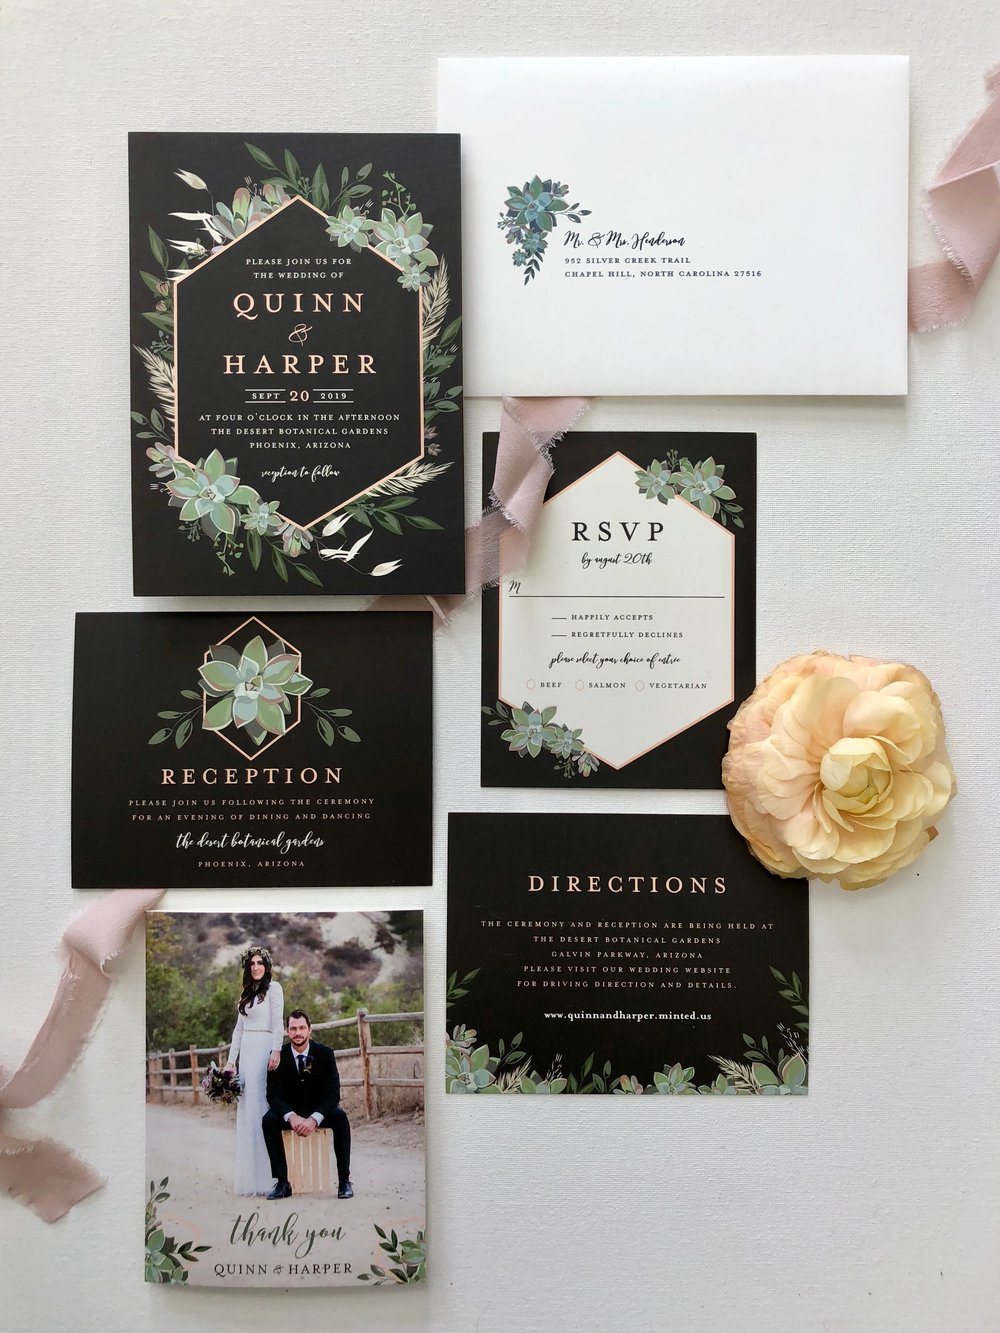 Stationery | Minted  Ribbon | Tono & Co.  Florals | Oak & the Owl  Workshop | LVL Academy  Styling & Photography | To Be Loved Events